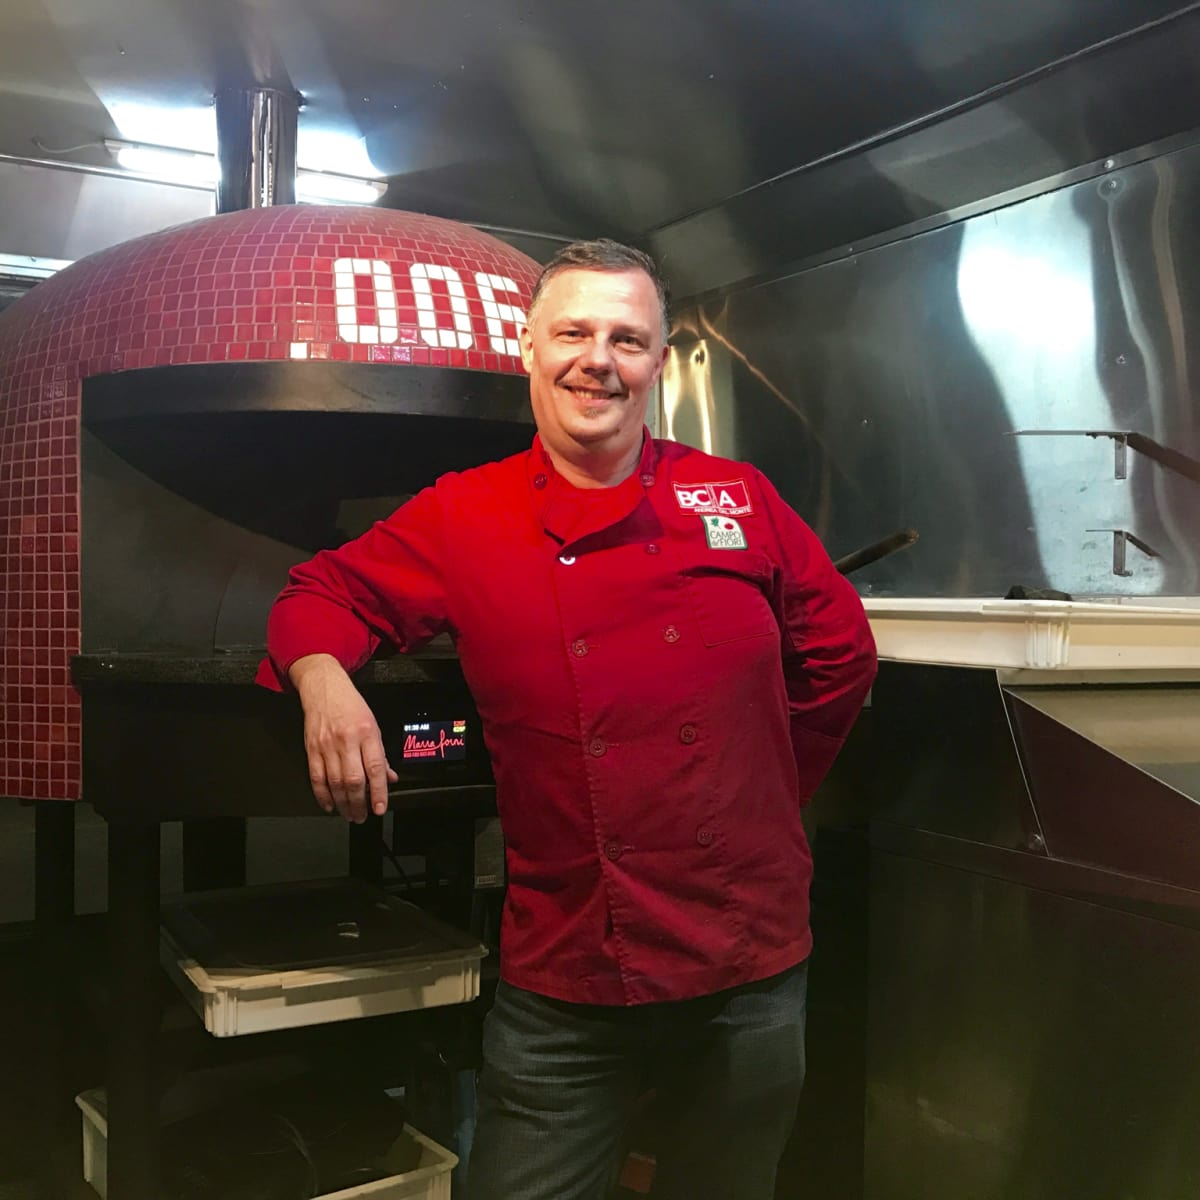 006 Pizza food truck Andrea Dal Monte